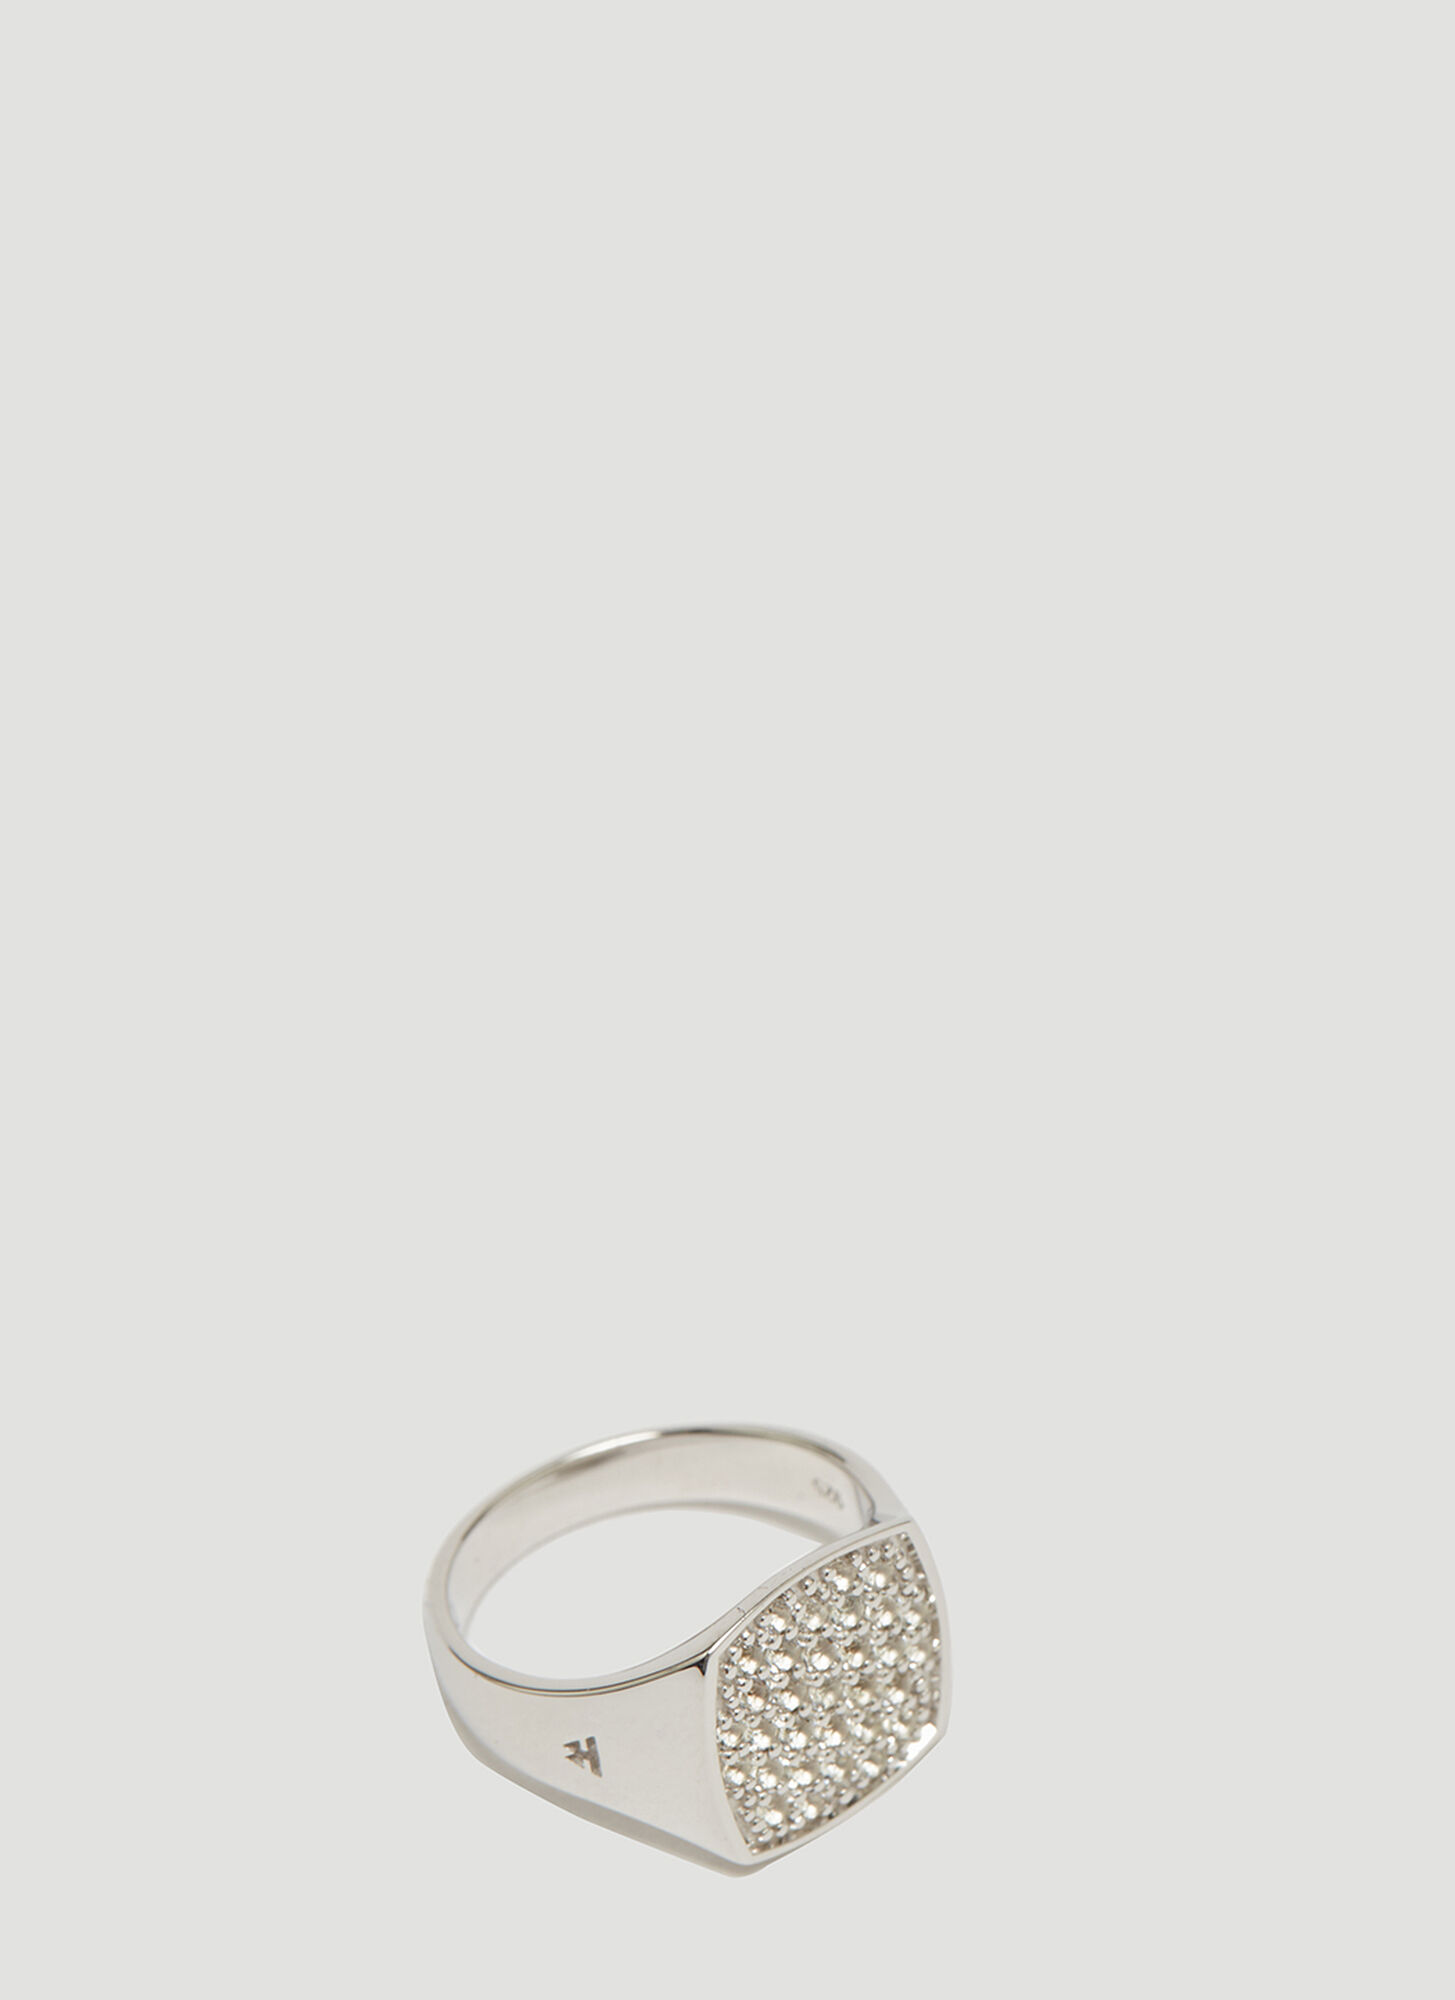 Tom Wood Mini Cushion White Topaz Signet Ring in Silver